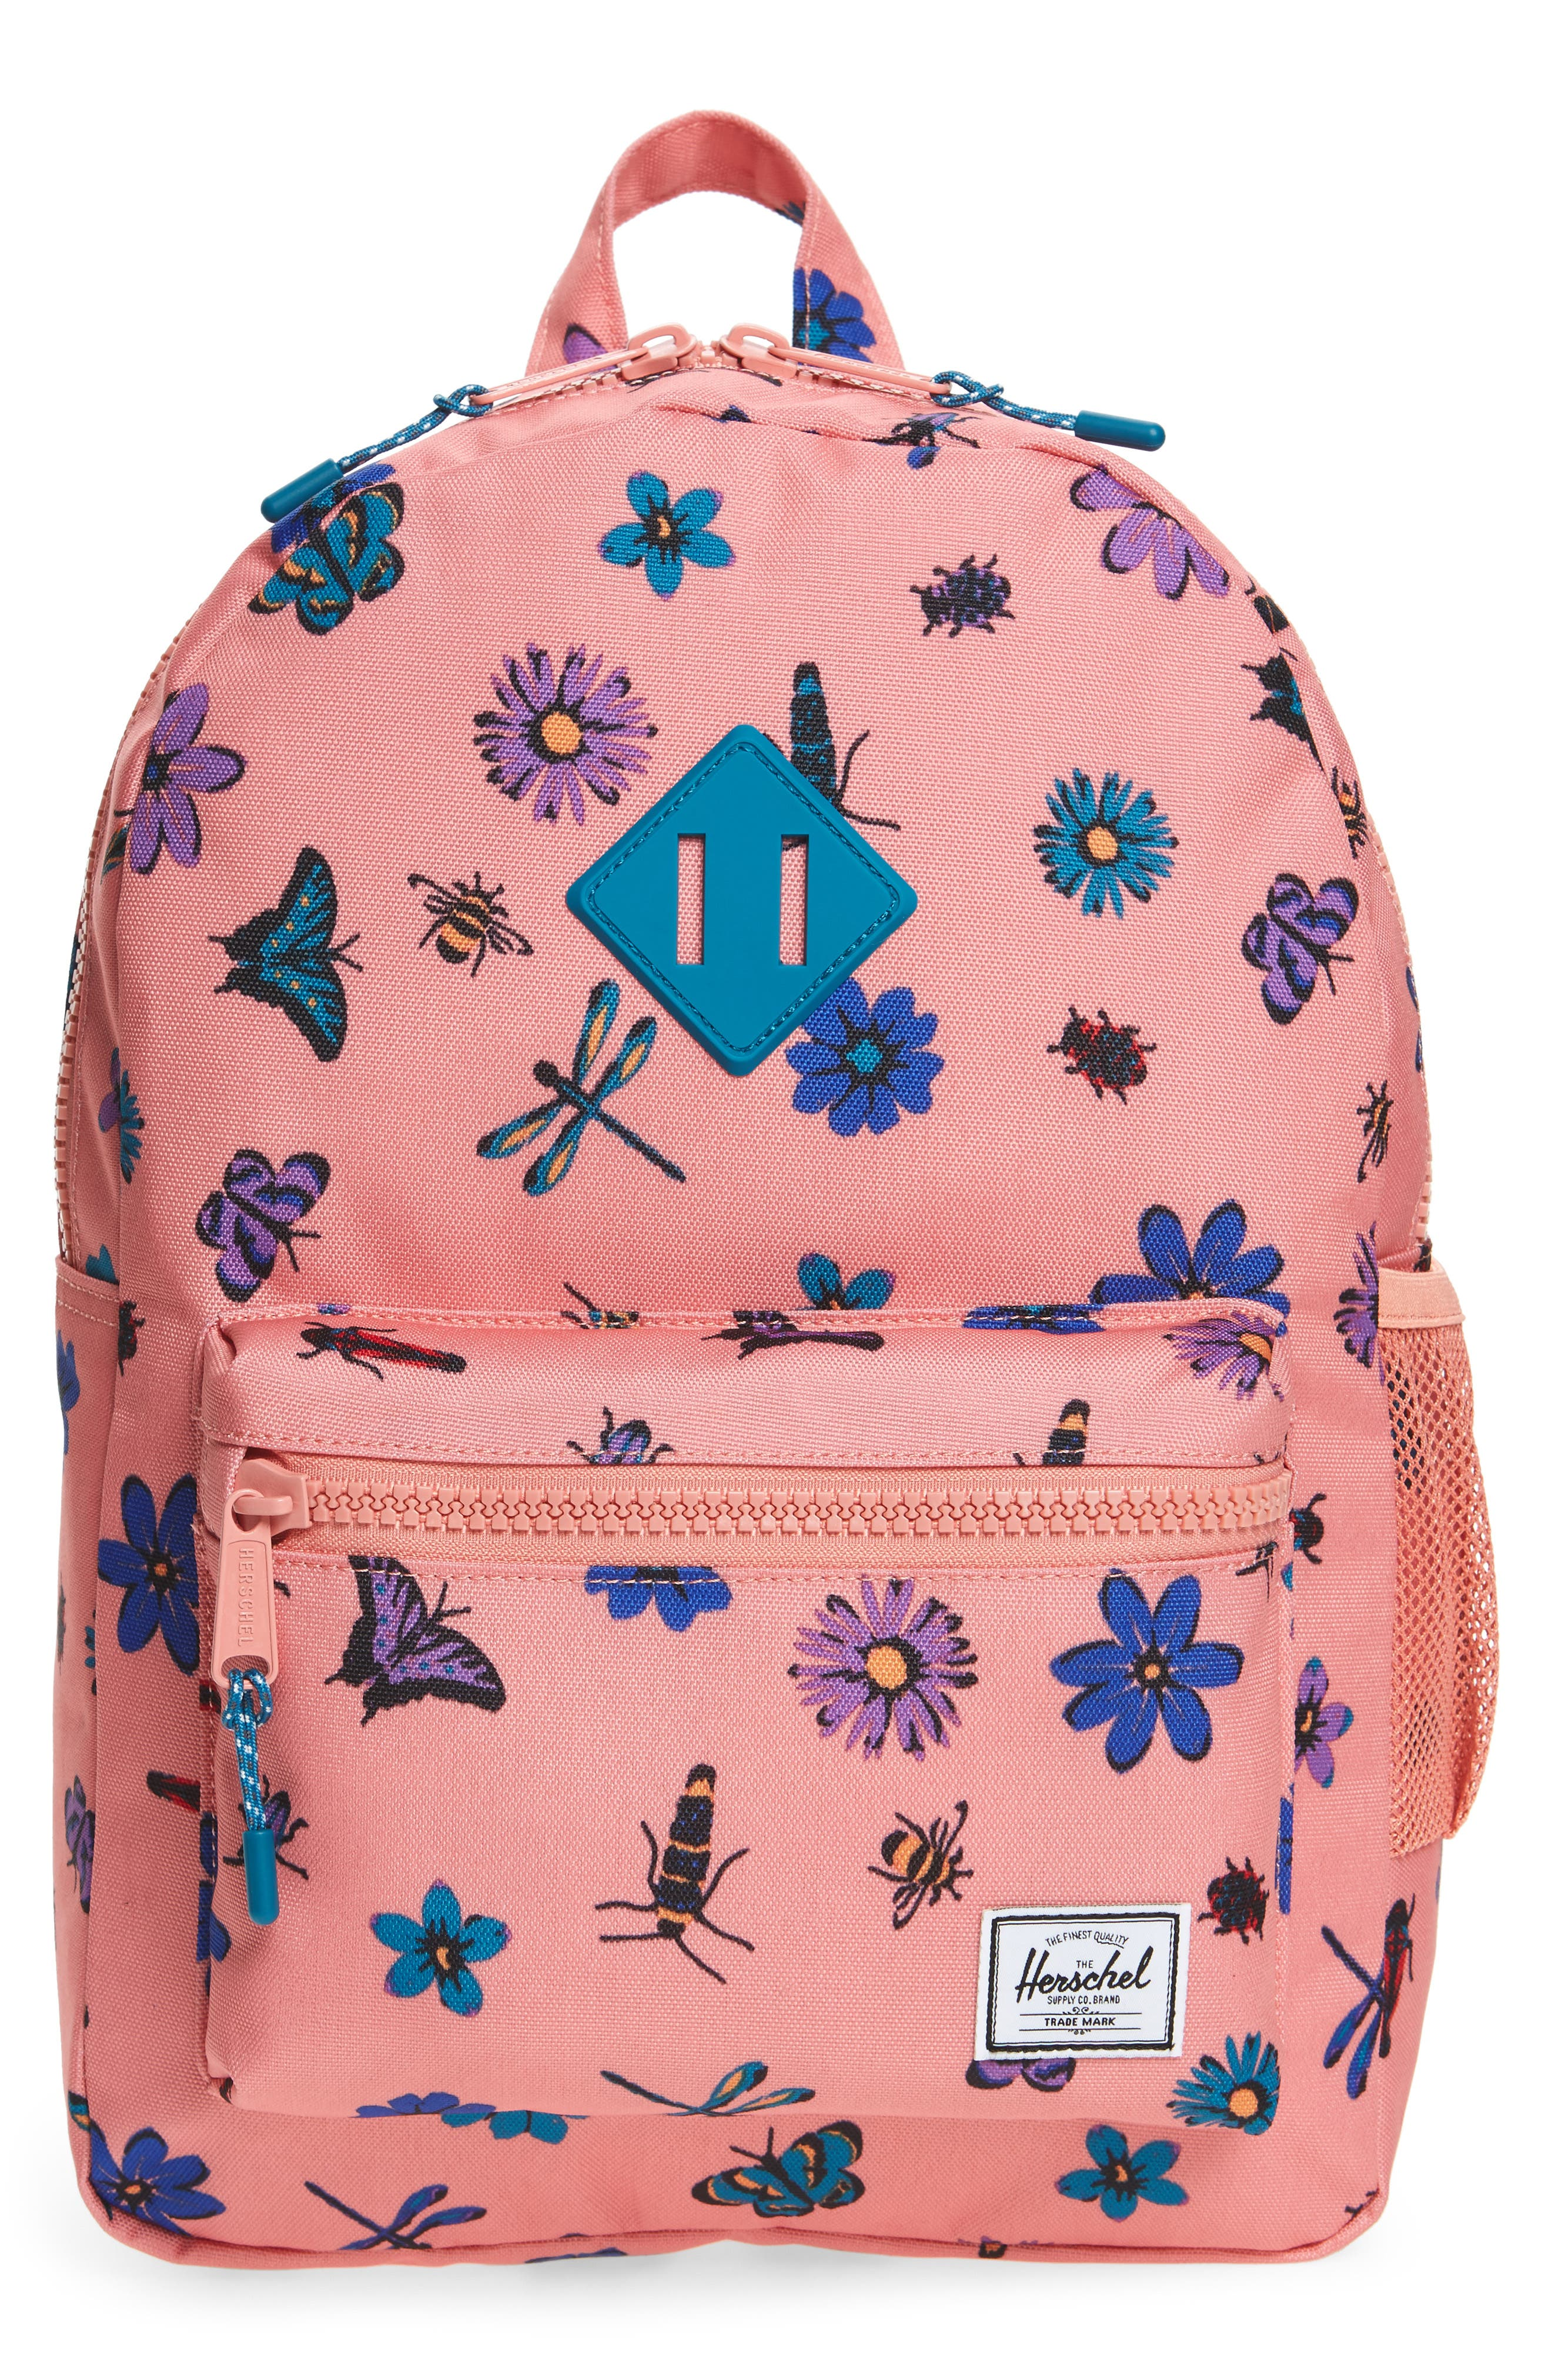 Alternate Image 1 Selected - Herschel Supply Co. Heritage Backpack (Kids)